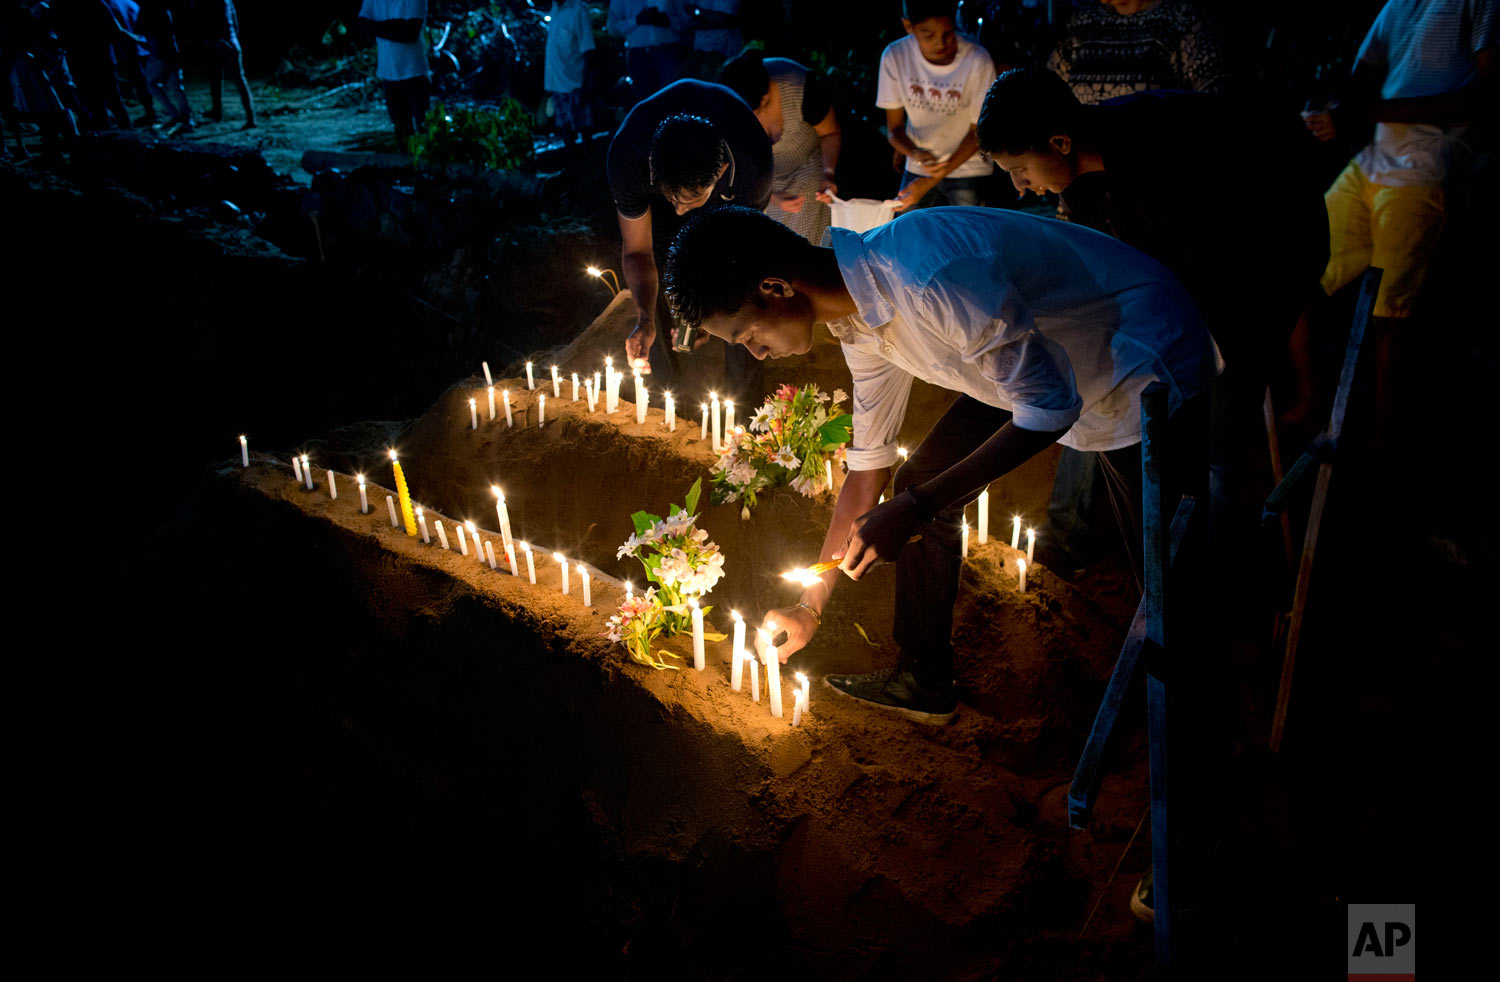 Relatives light candles after burial of three victims of the same family, who died at Easter Sunday bomb blast at St. Sebastian Church in Negombo, Sri Lanka, April 22, 2019. (AP Photo/Gemunu Amarasinghe)